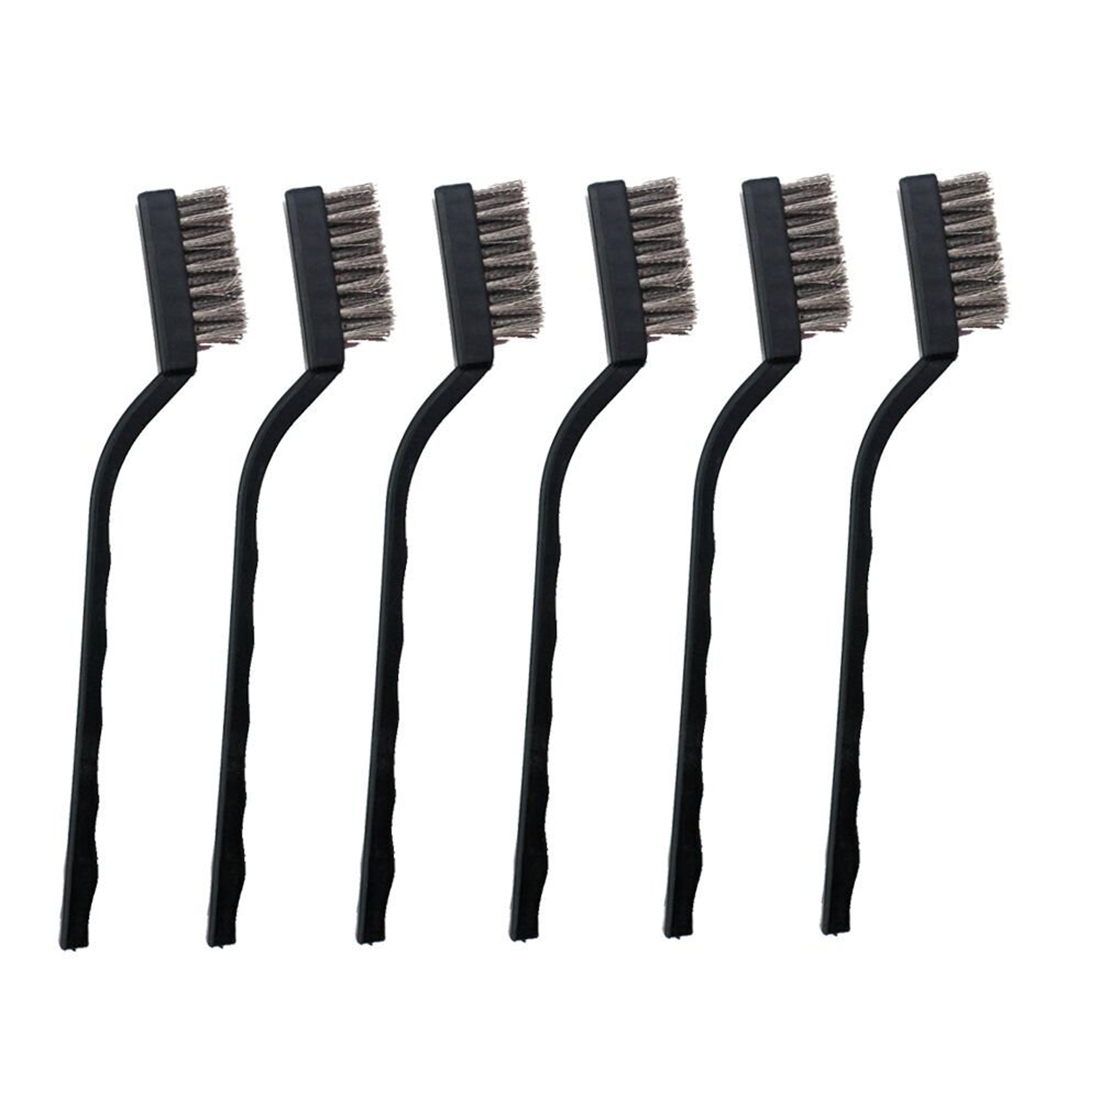 6 Pcs Mini Stainless Steel Wire Brush Set For Cleaning